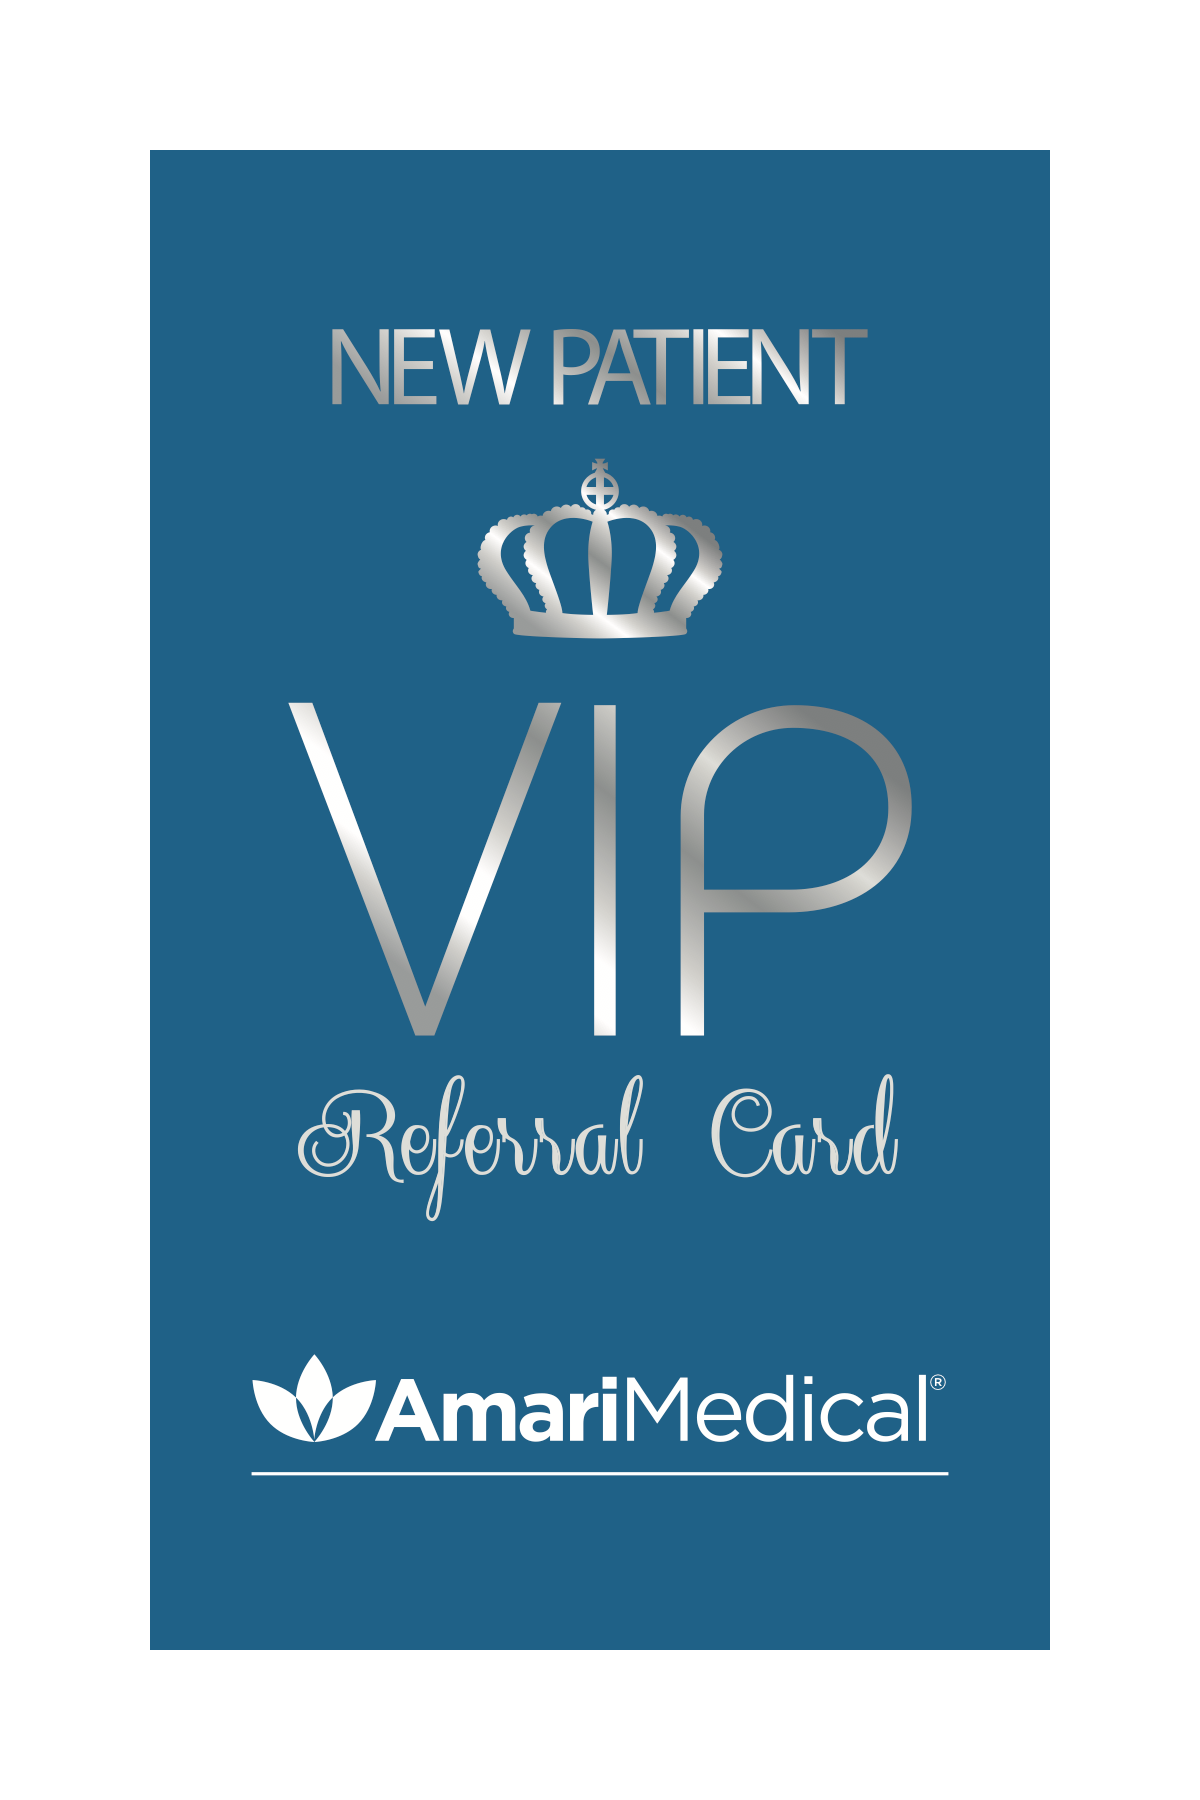 Replicate Loyalty and Referral Cards